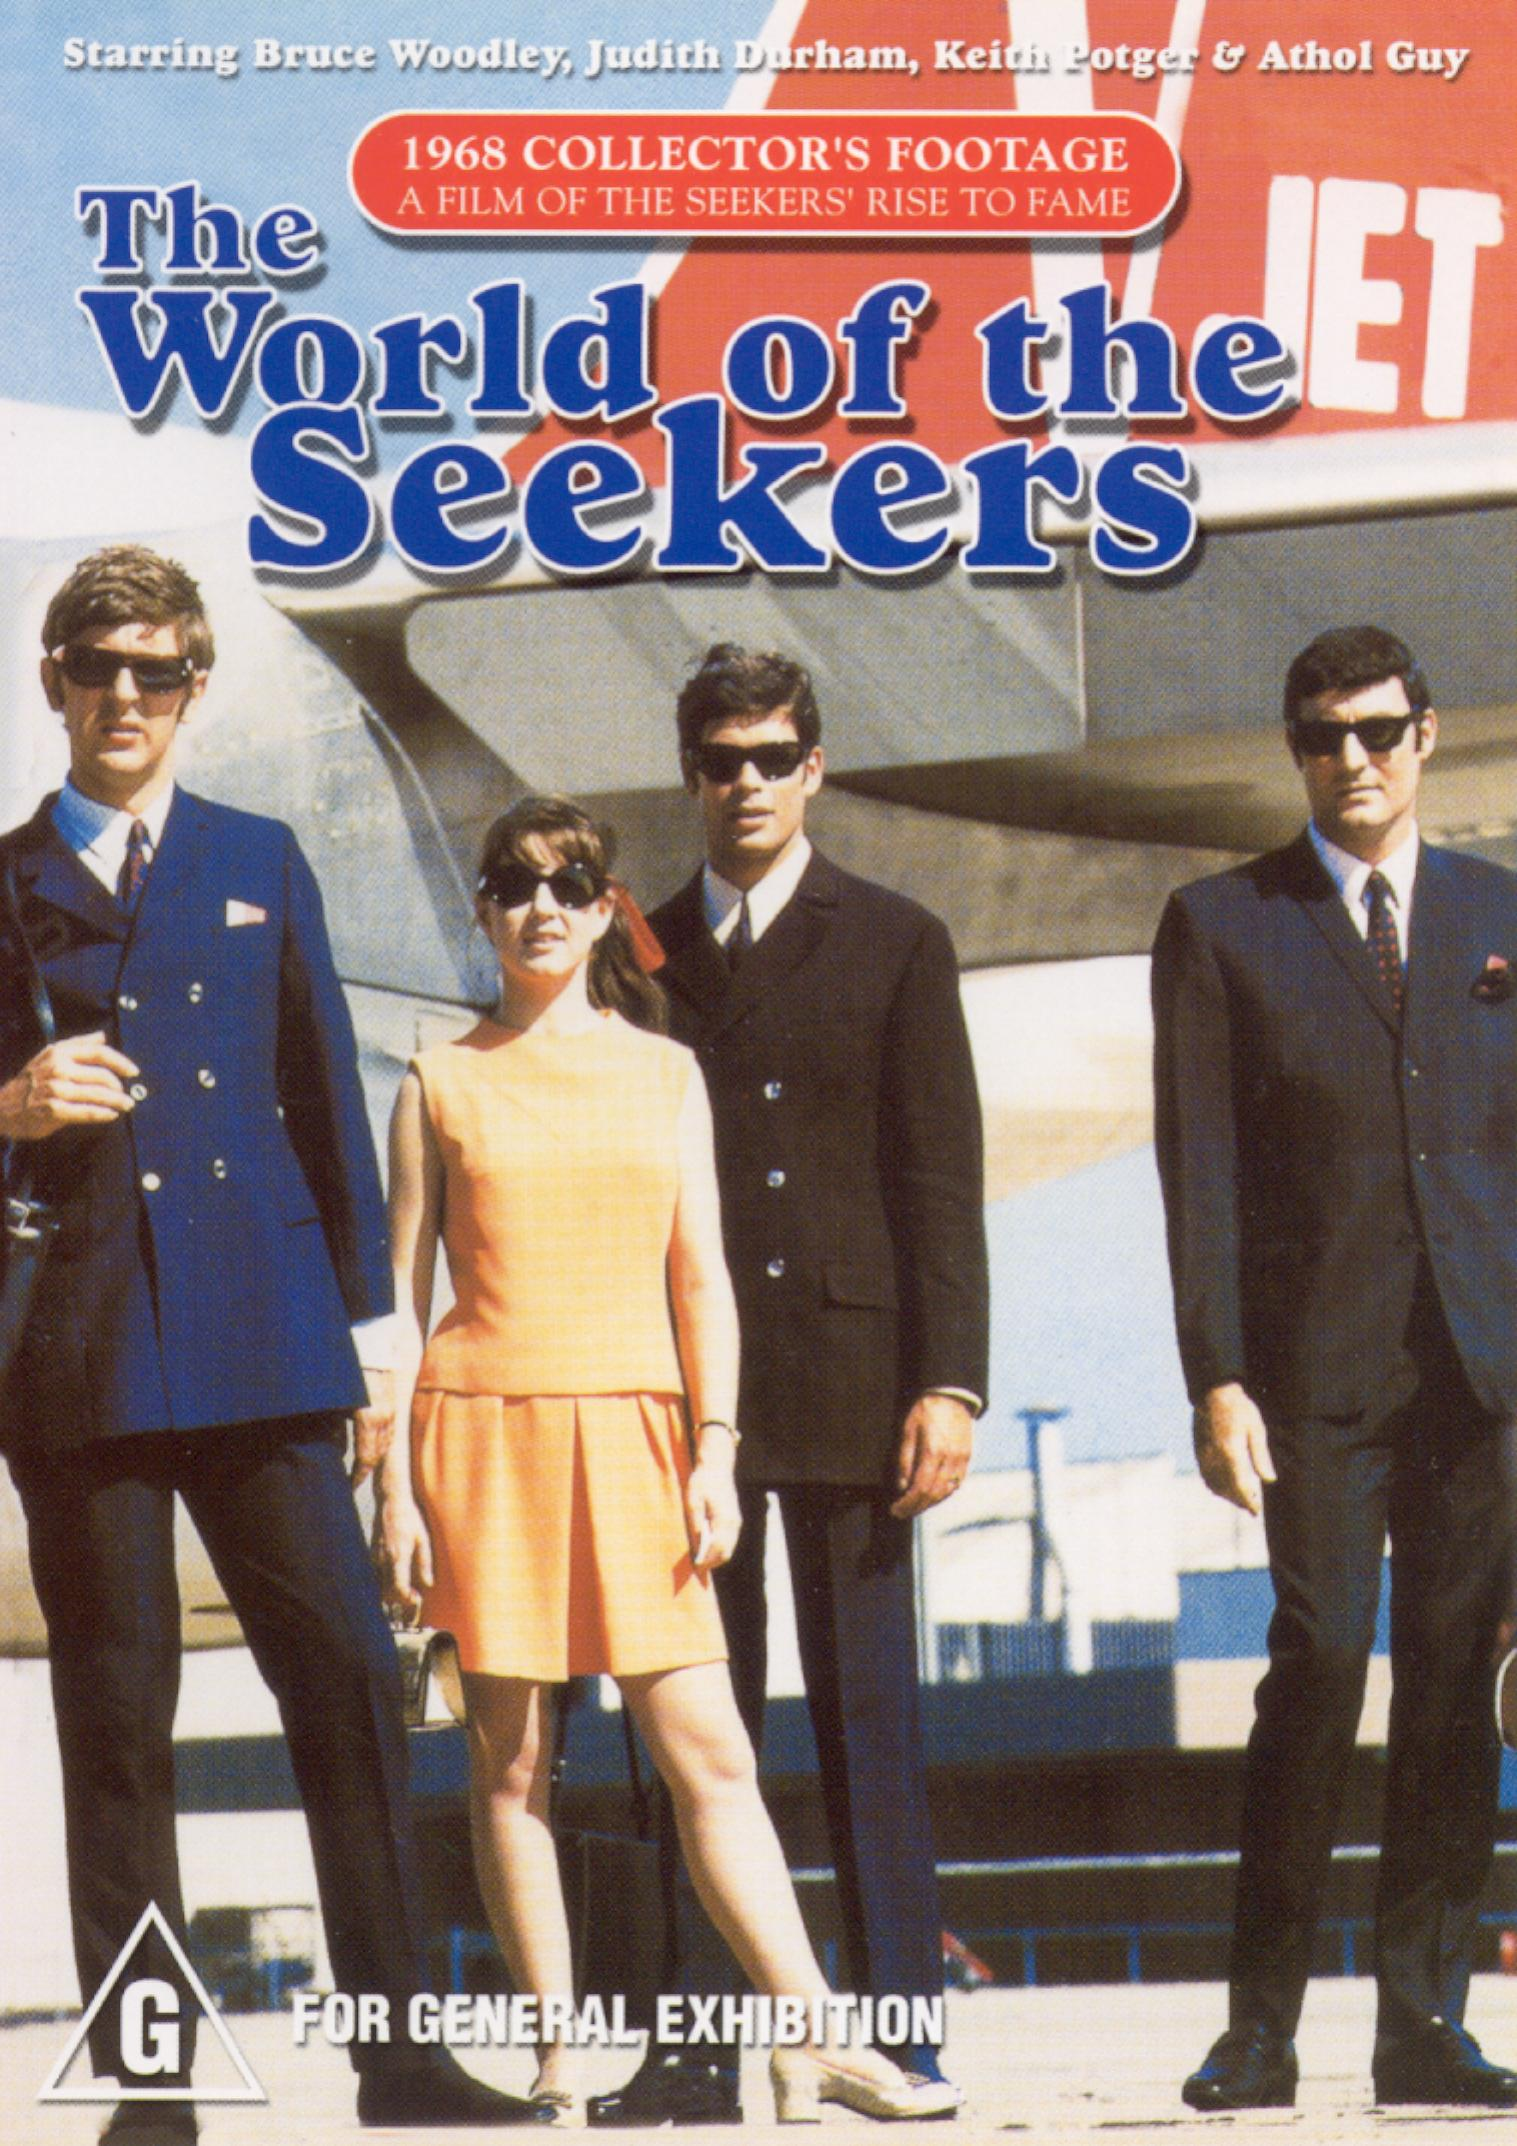 The World of the Seekers